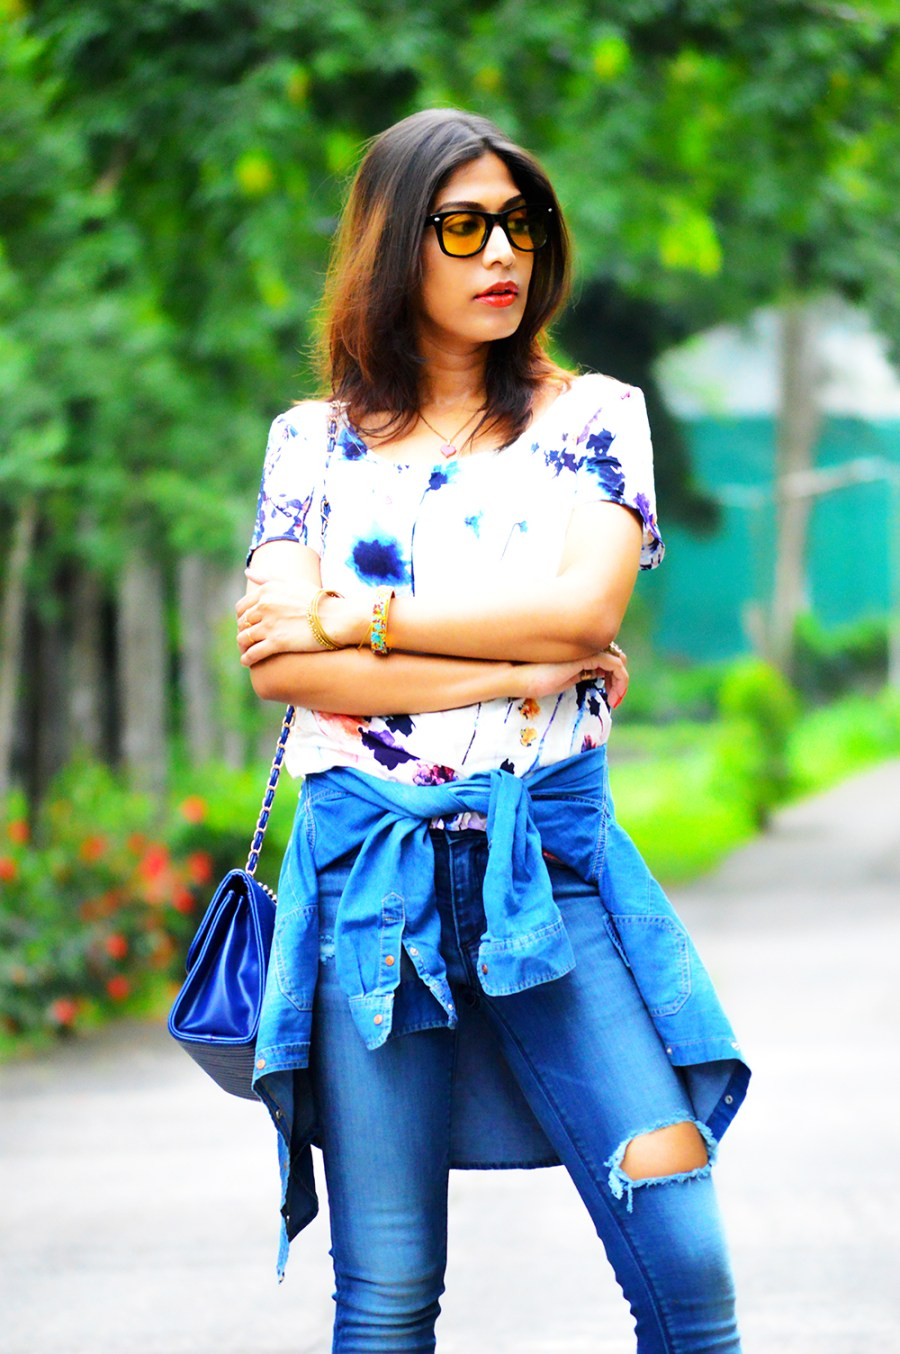 Fashion, Style, Photography, Street Style, Fashion Photography, Denim, Only Top, New look Denim Shirt, Casual Wear, Street Style Photography, Denim Style-4